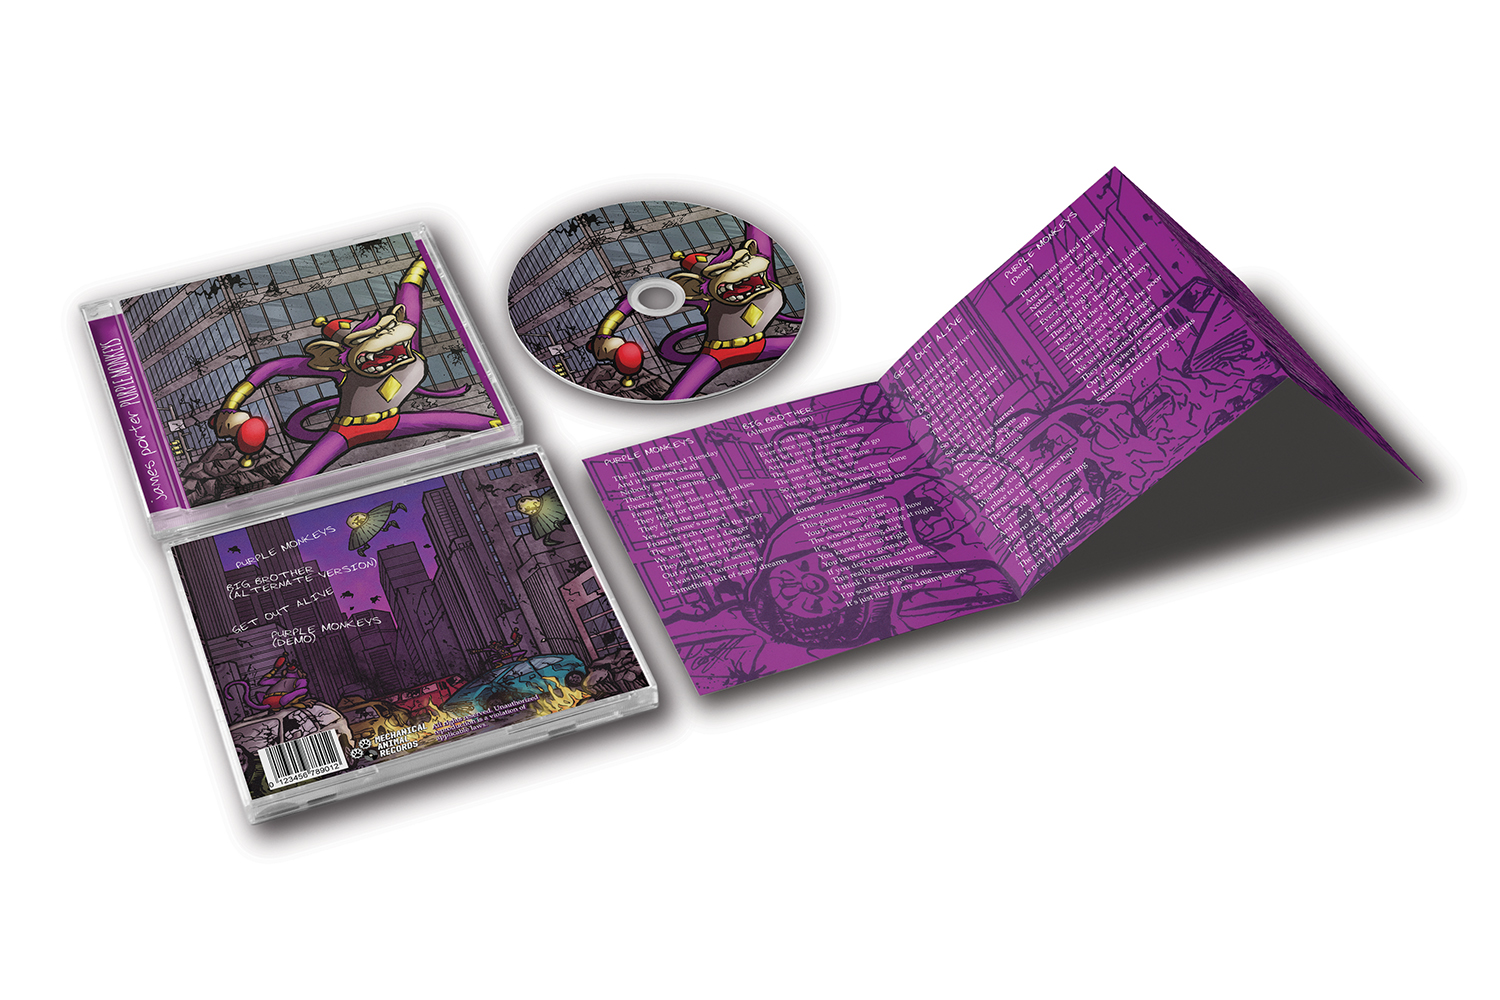 Click here to see the artwork used in the CD design for the album.